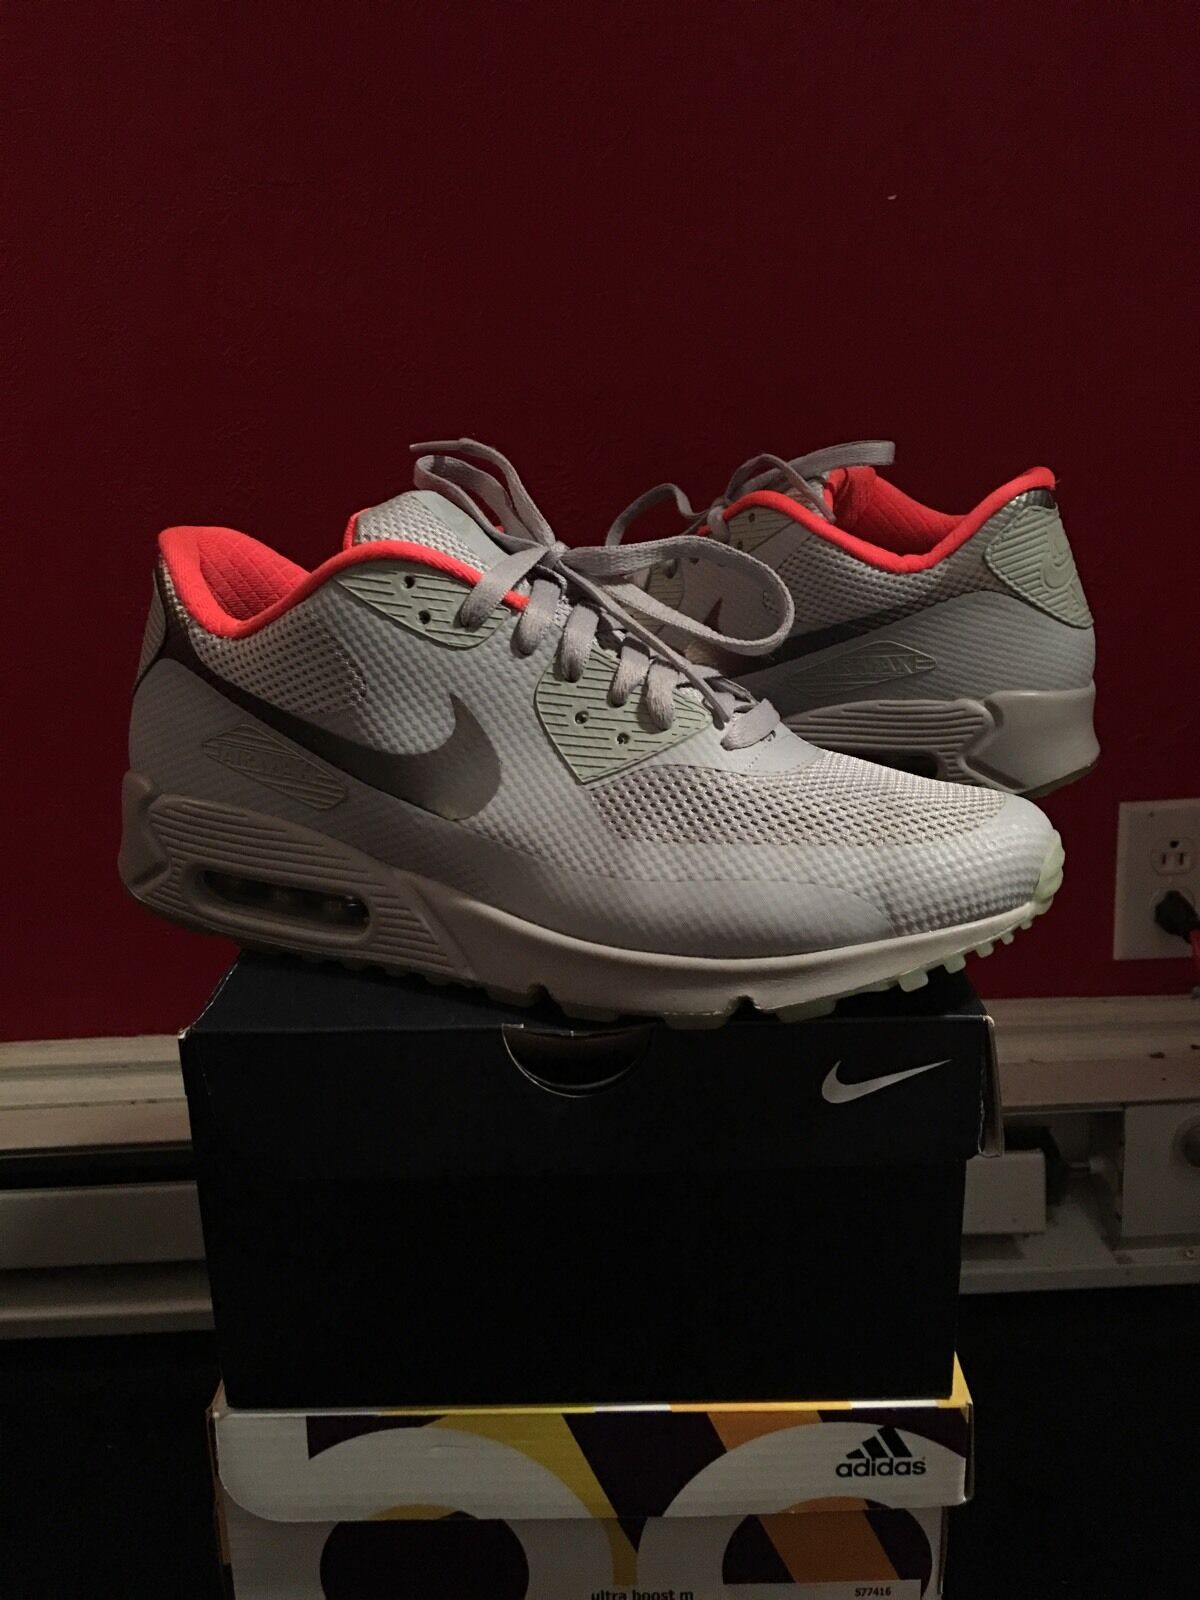 Nike Air Max 90 Nike ID Yeezy Colorway Size 10.5 100% Authentic